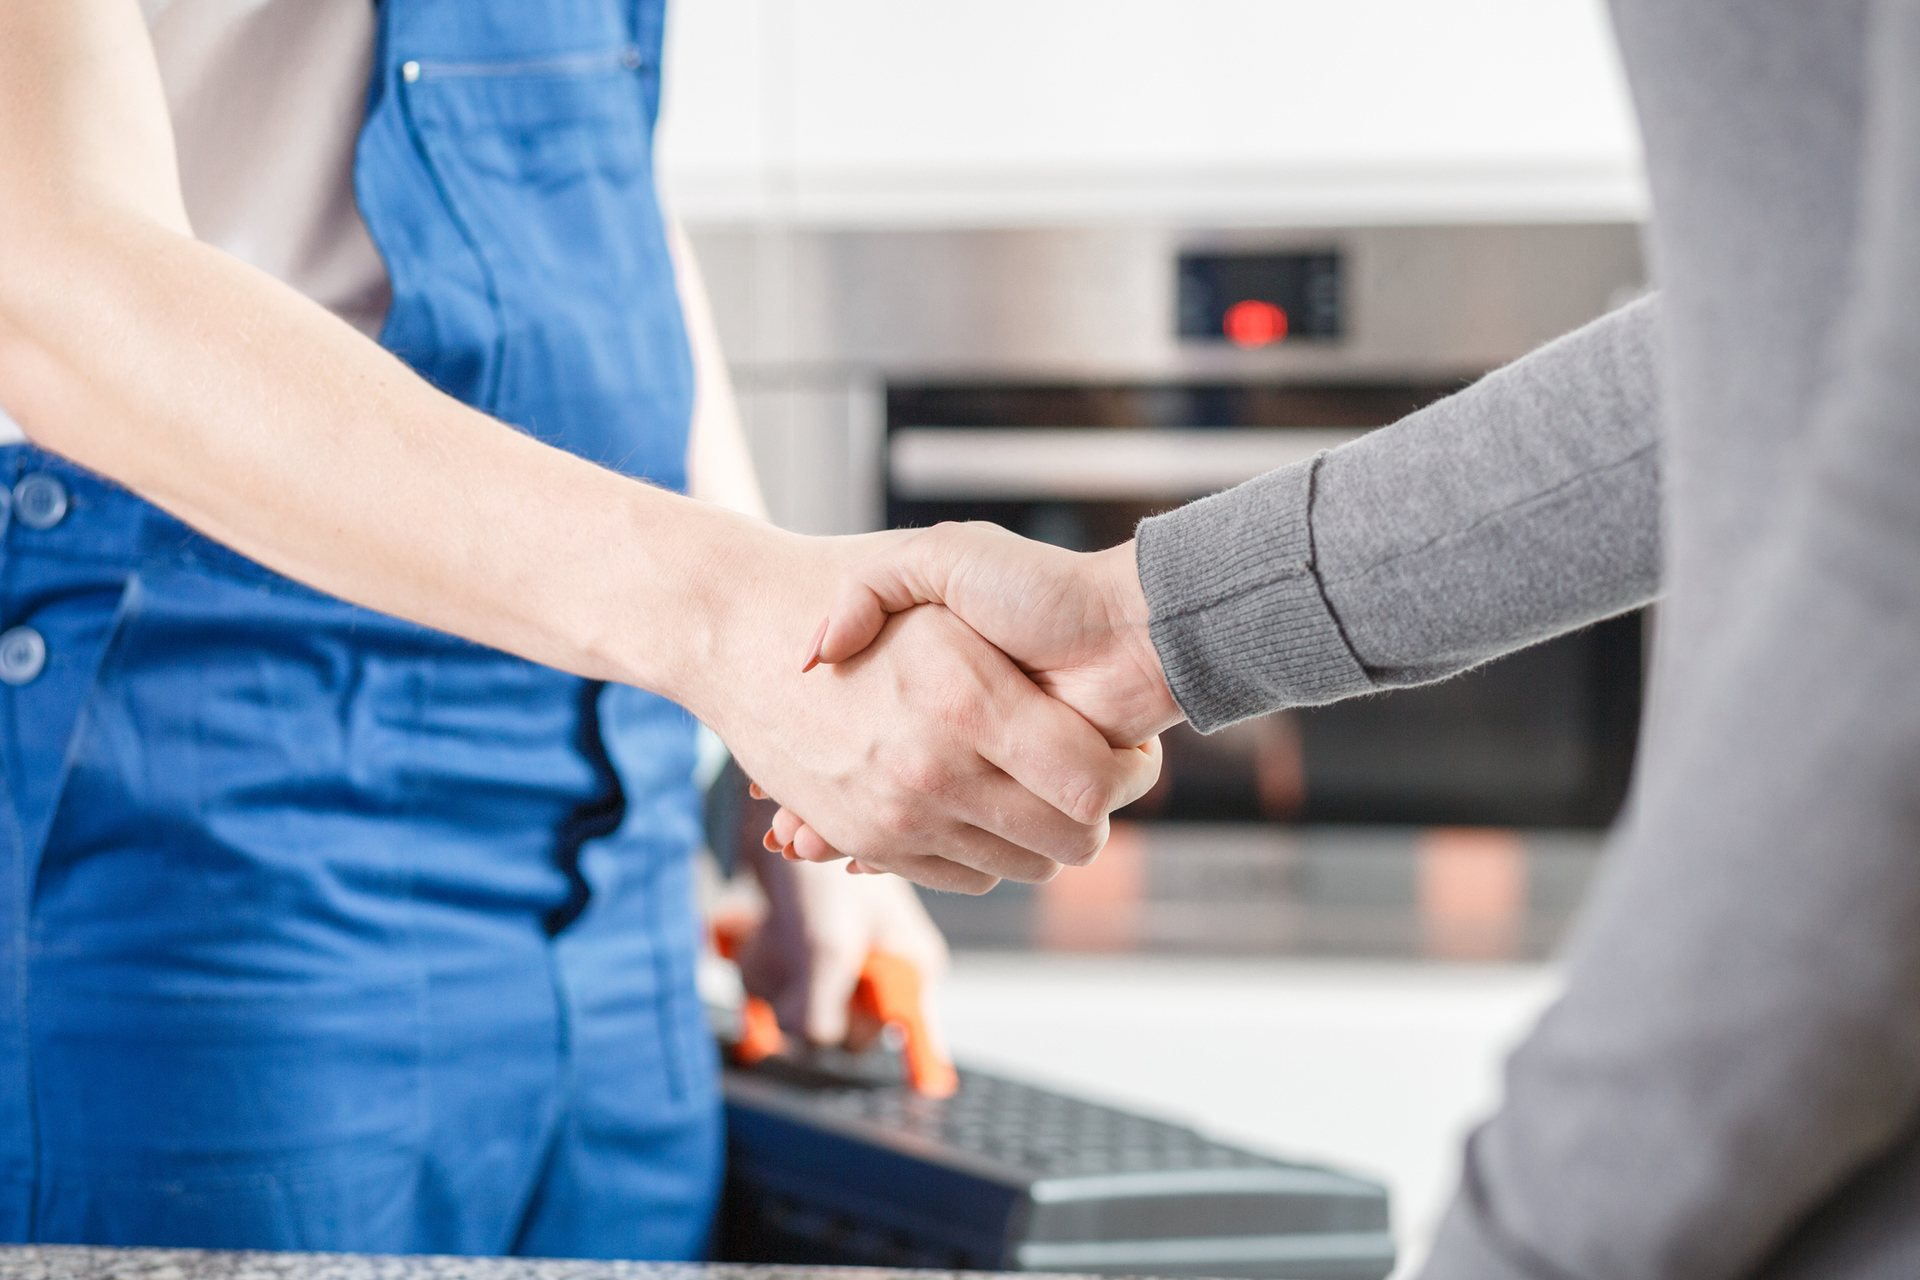 Home service technician shaking hands with customer